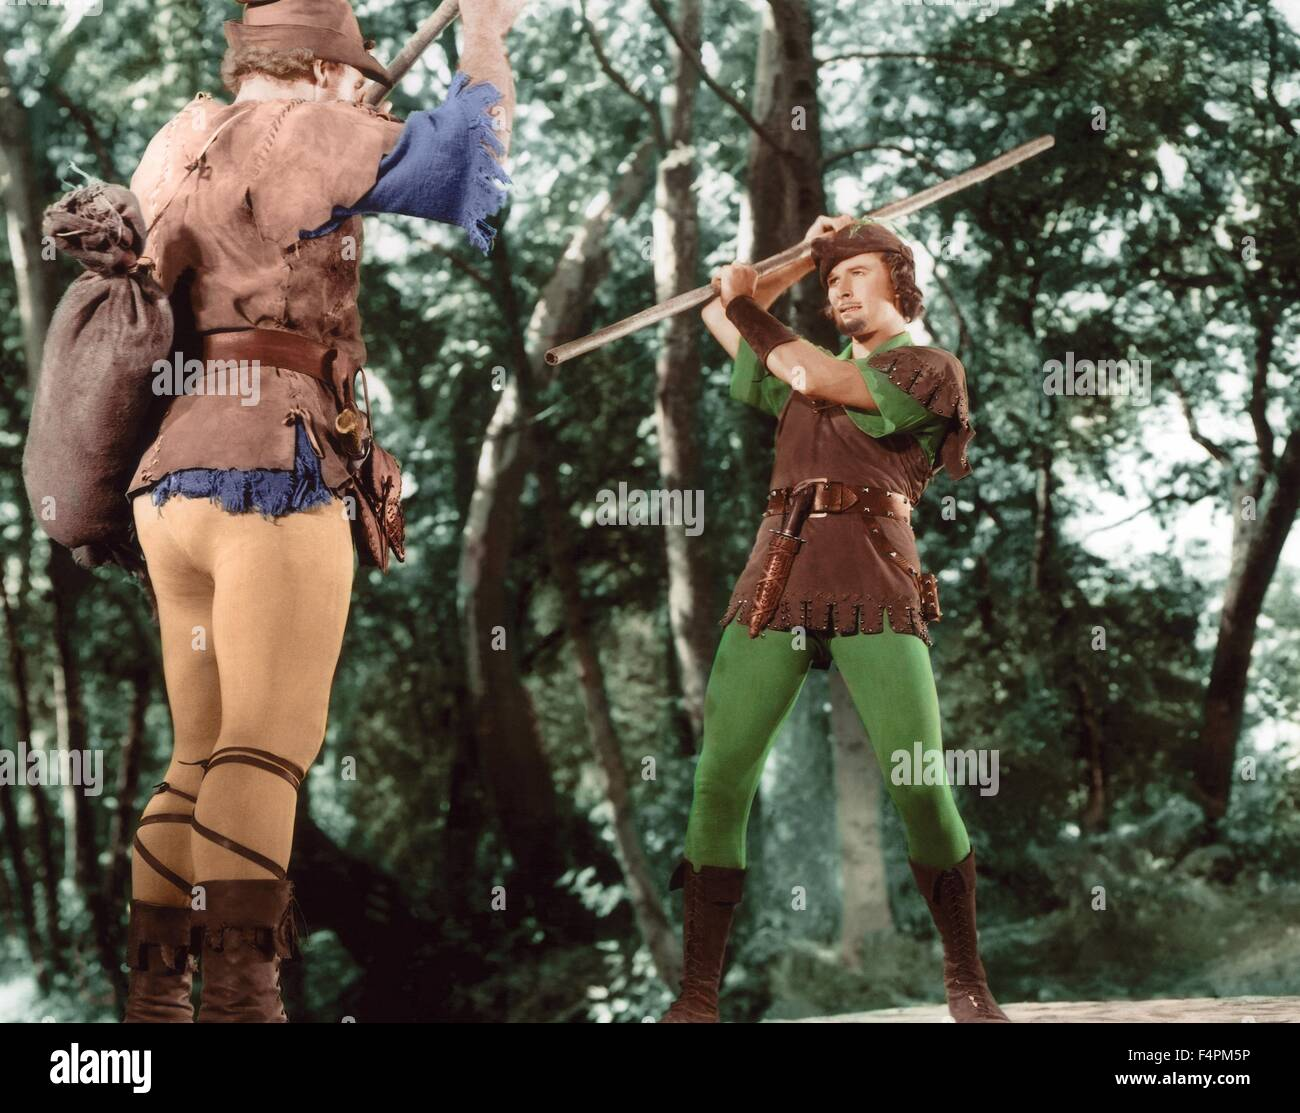 Errol Flynn / Le avventure di Robin Hood / 1938 diretto da Michael Curtiz e William Keighley / [Warner Bros Foto] Immagini Stock